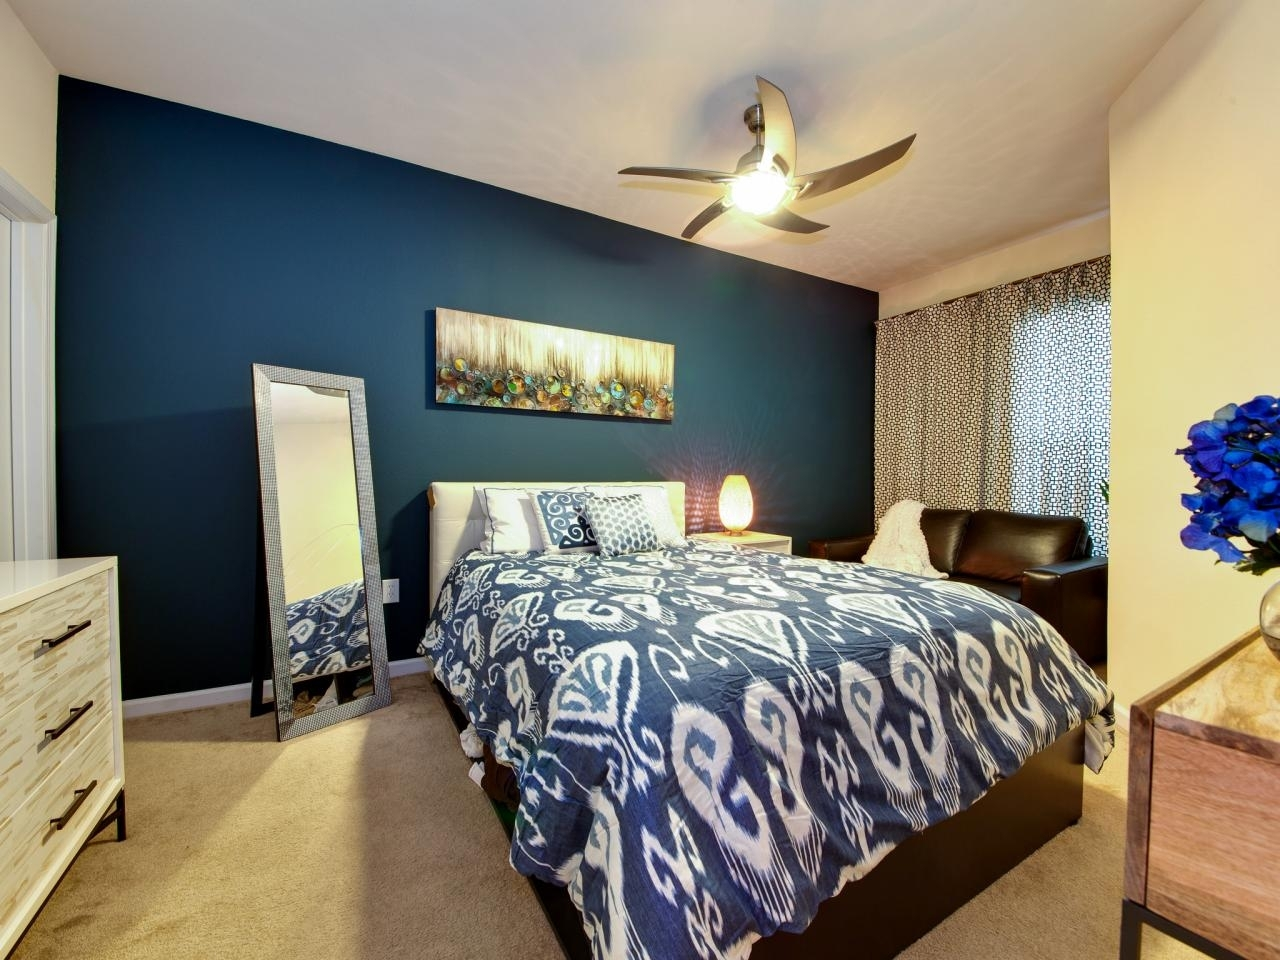 Bedroom | Navy Blue Wall Accent With Wheat Color Base Combination Intended For Most Popular Wall Accents Color Combinations (View 13 of 15)